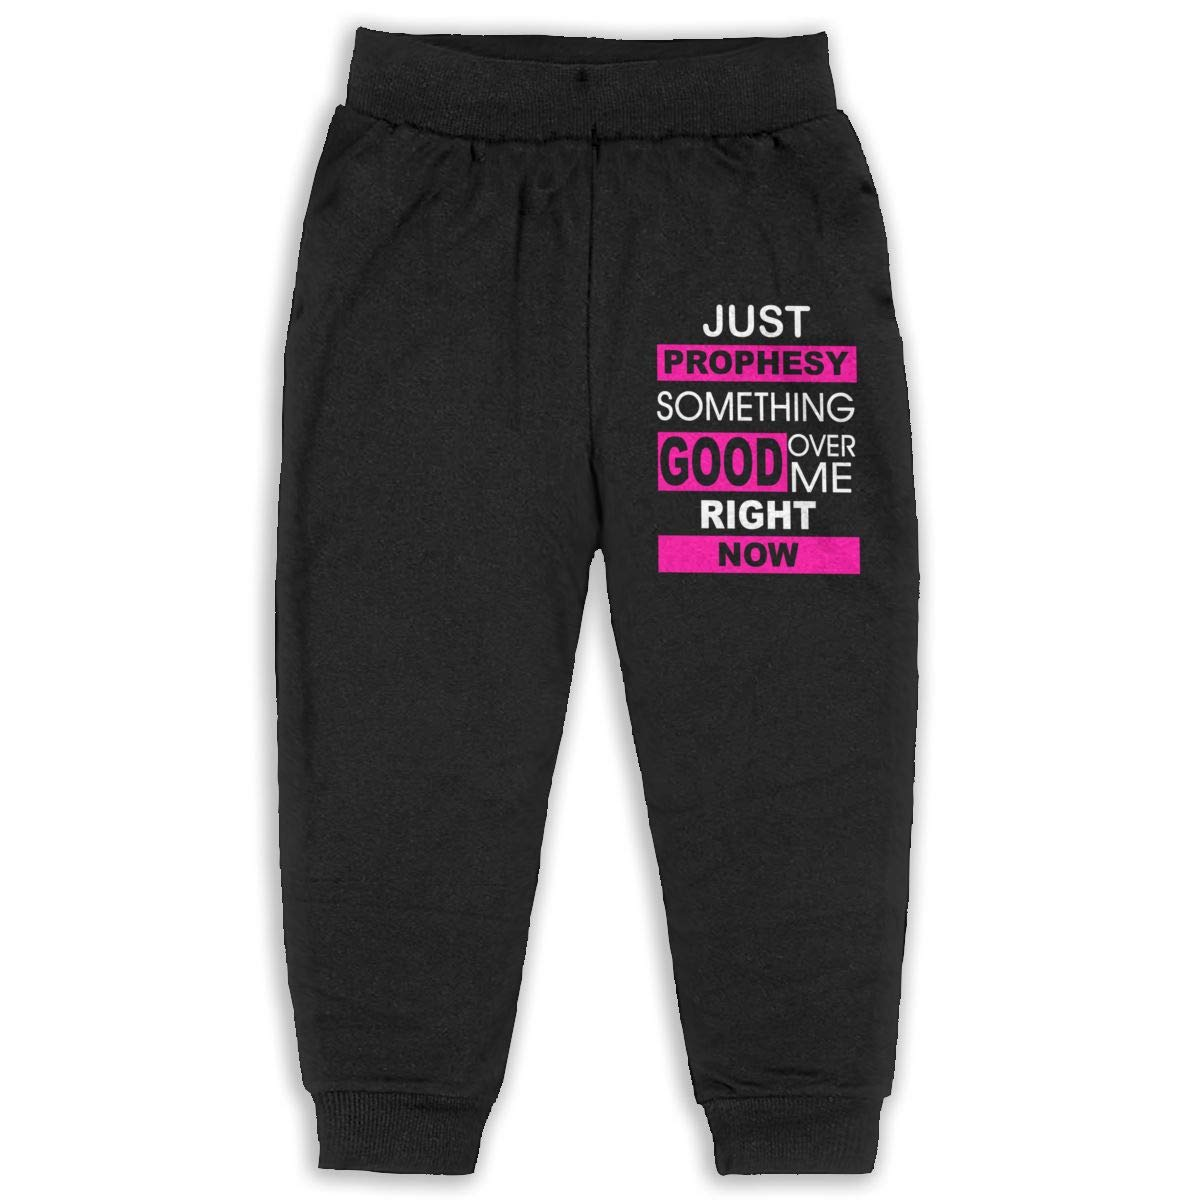 Just Prophesy Something Good Over Me Right Now 2-6T Boys Active Jogger Pants